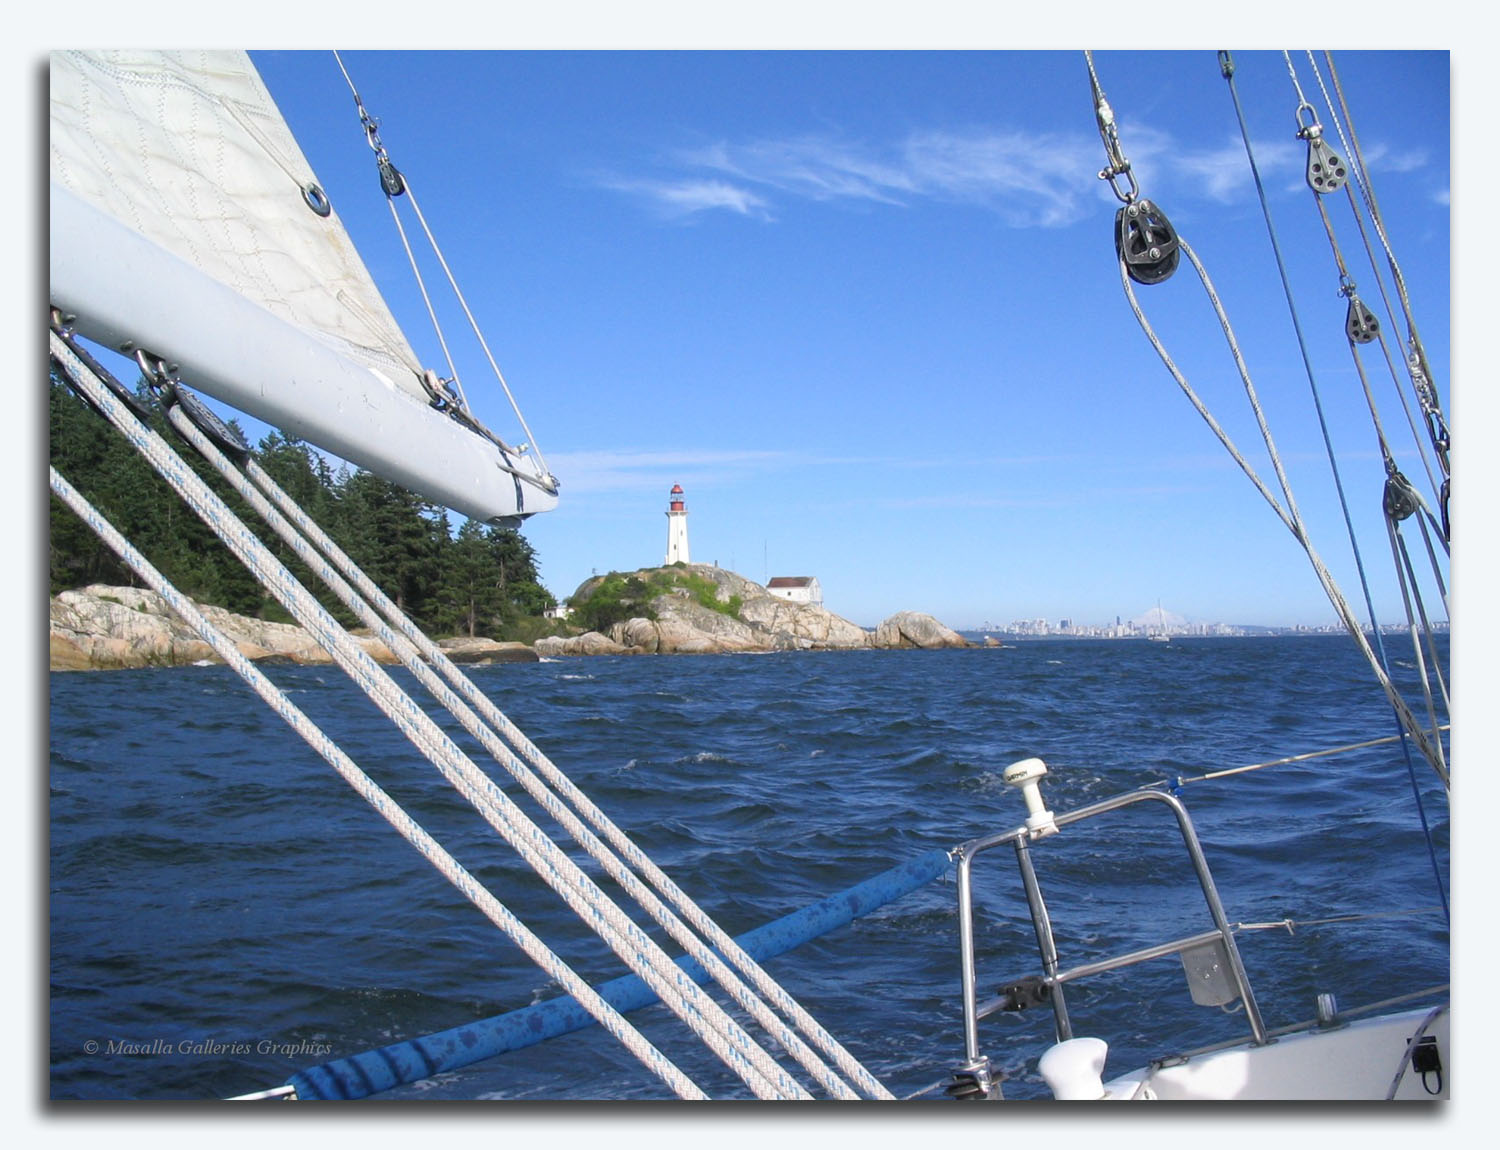 sailing off Point Atkinson, West Vancouver